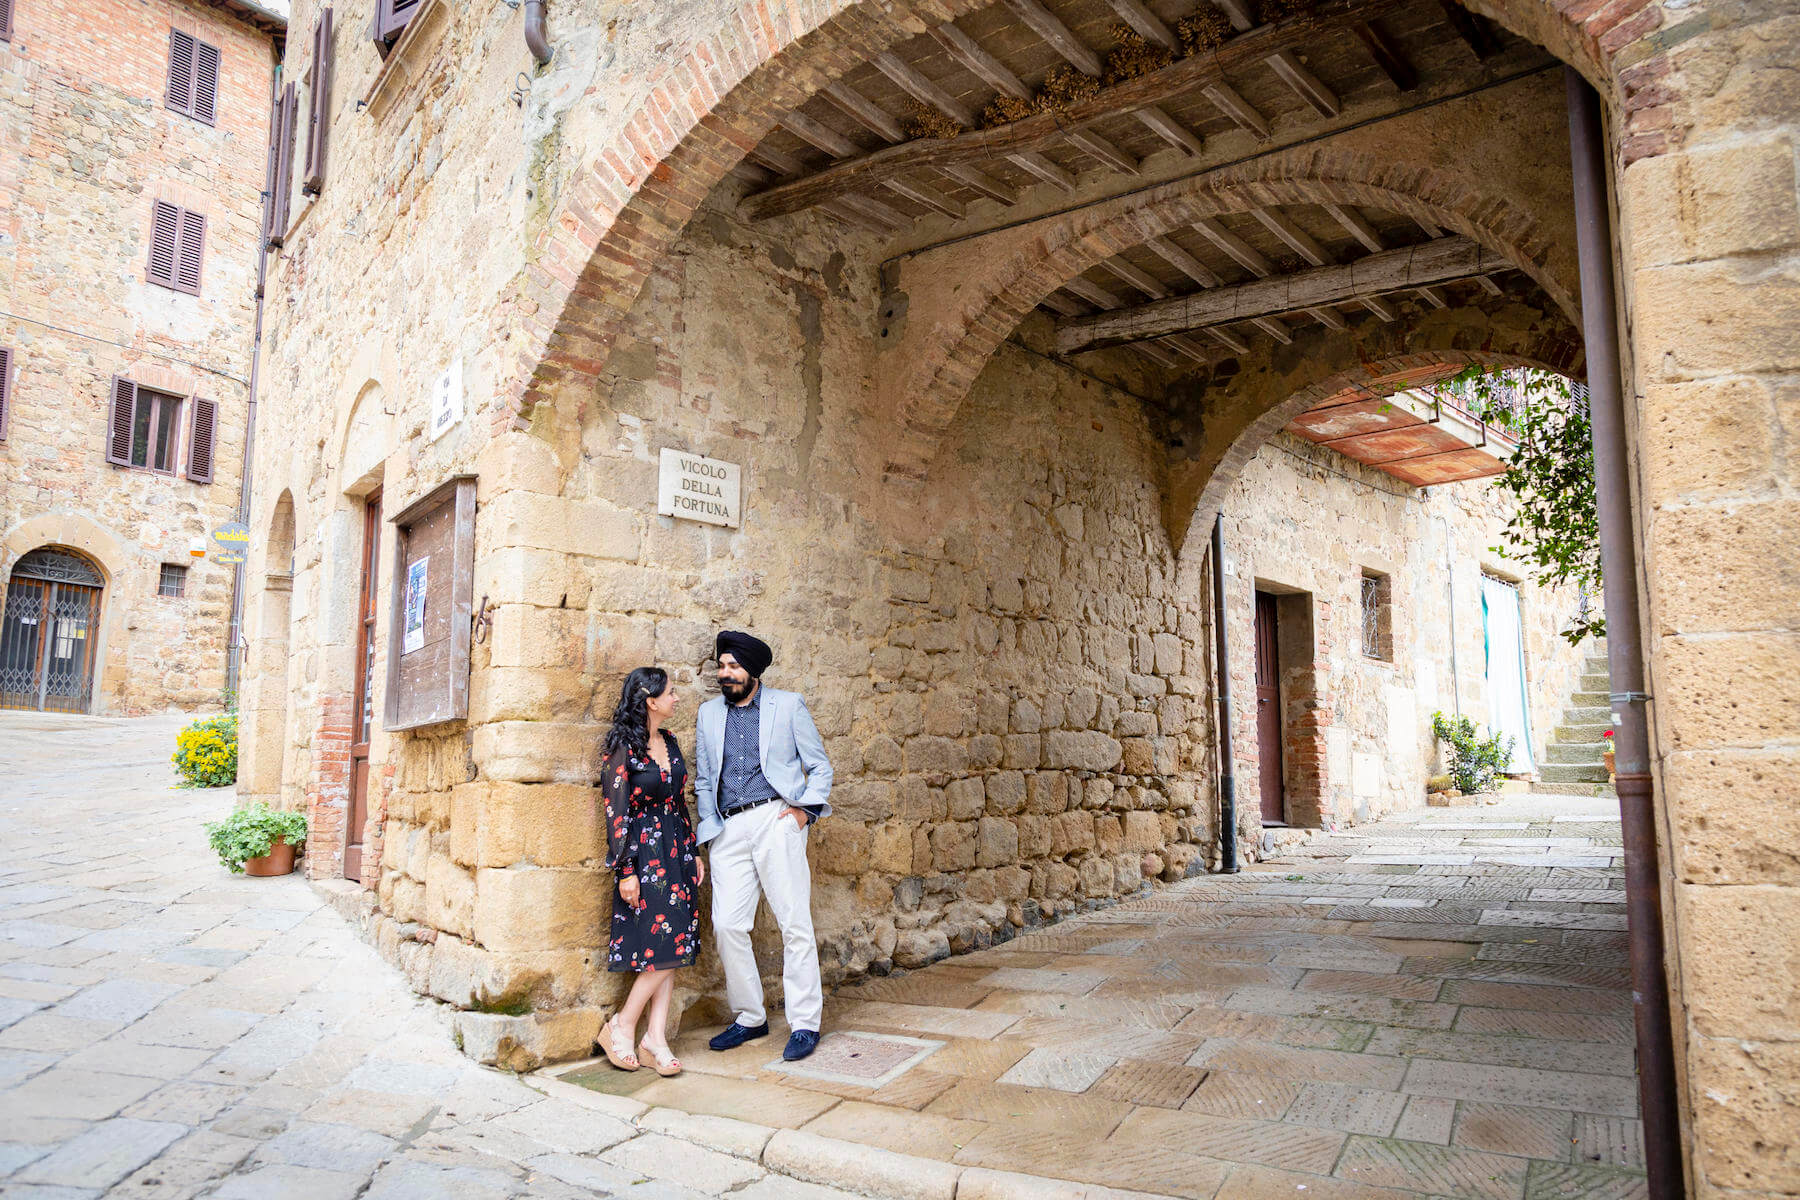 A man and woman look at each other and smile while leaning against a stone wall in Tuscany, Italy.